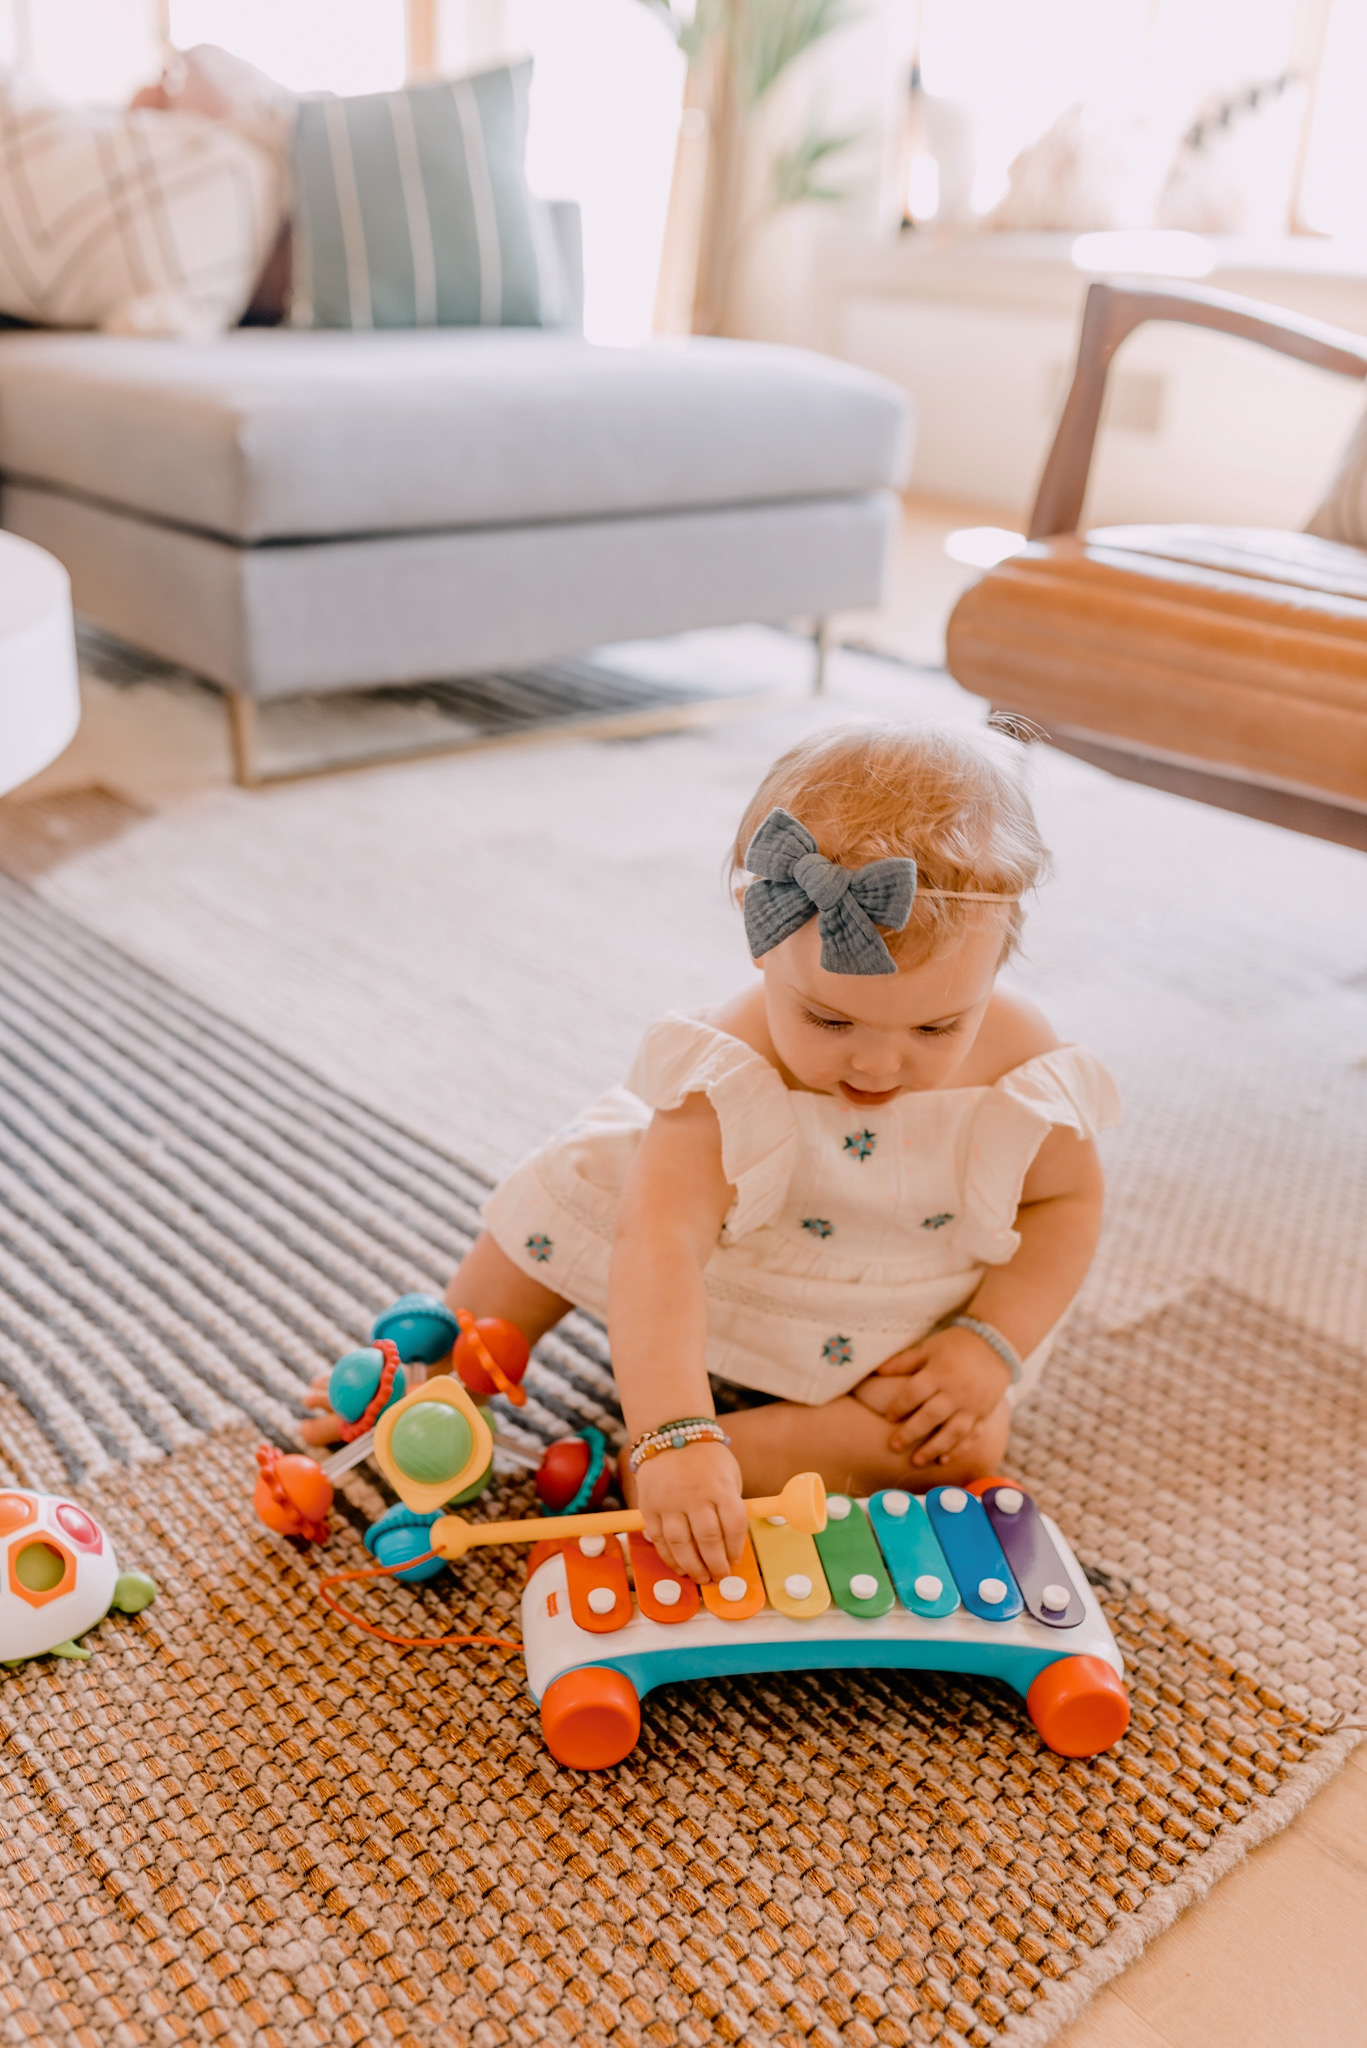 AMAZON FAVORITES: 20 GIFT IDEAS FOR ONE YEAR OLDS featured by top San Diego lifestyle blogger, Navy Grace | Gift Ideas for One Year Old by popular San Diego motherhood blog, Navy Grace: image of a one year old girl playing with a toy xylophone.